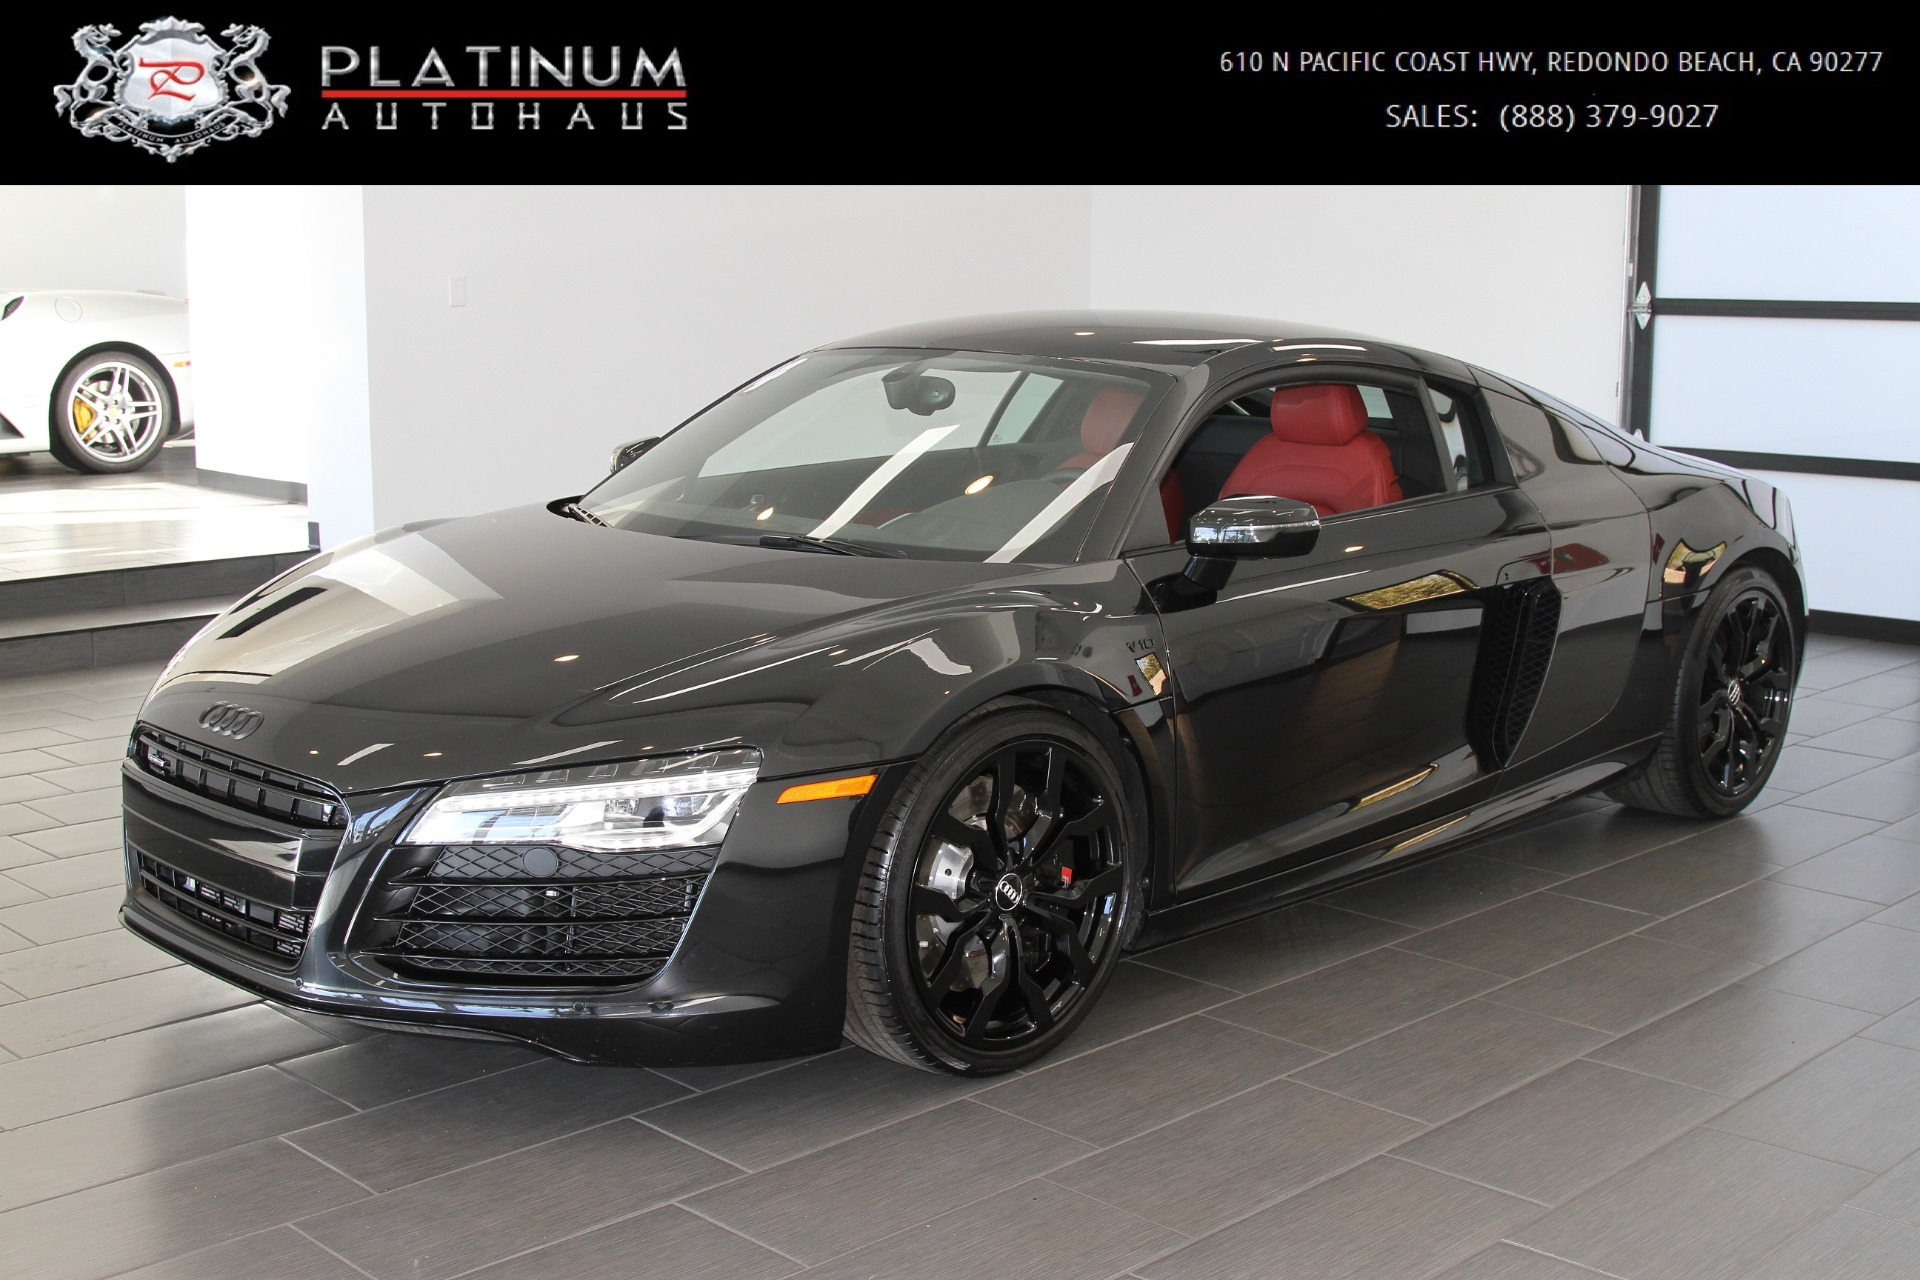 2014 Audi R8 5.2 V10 quattro ***RARE 6 SPEED MANUAL *** Stock # 6113 for sale near Redondo Beach ...